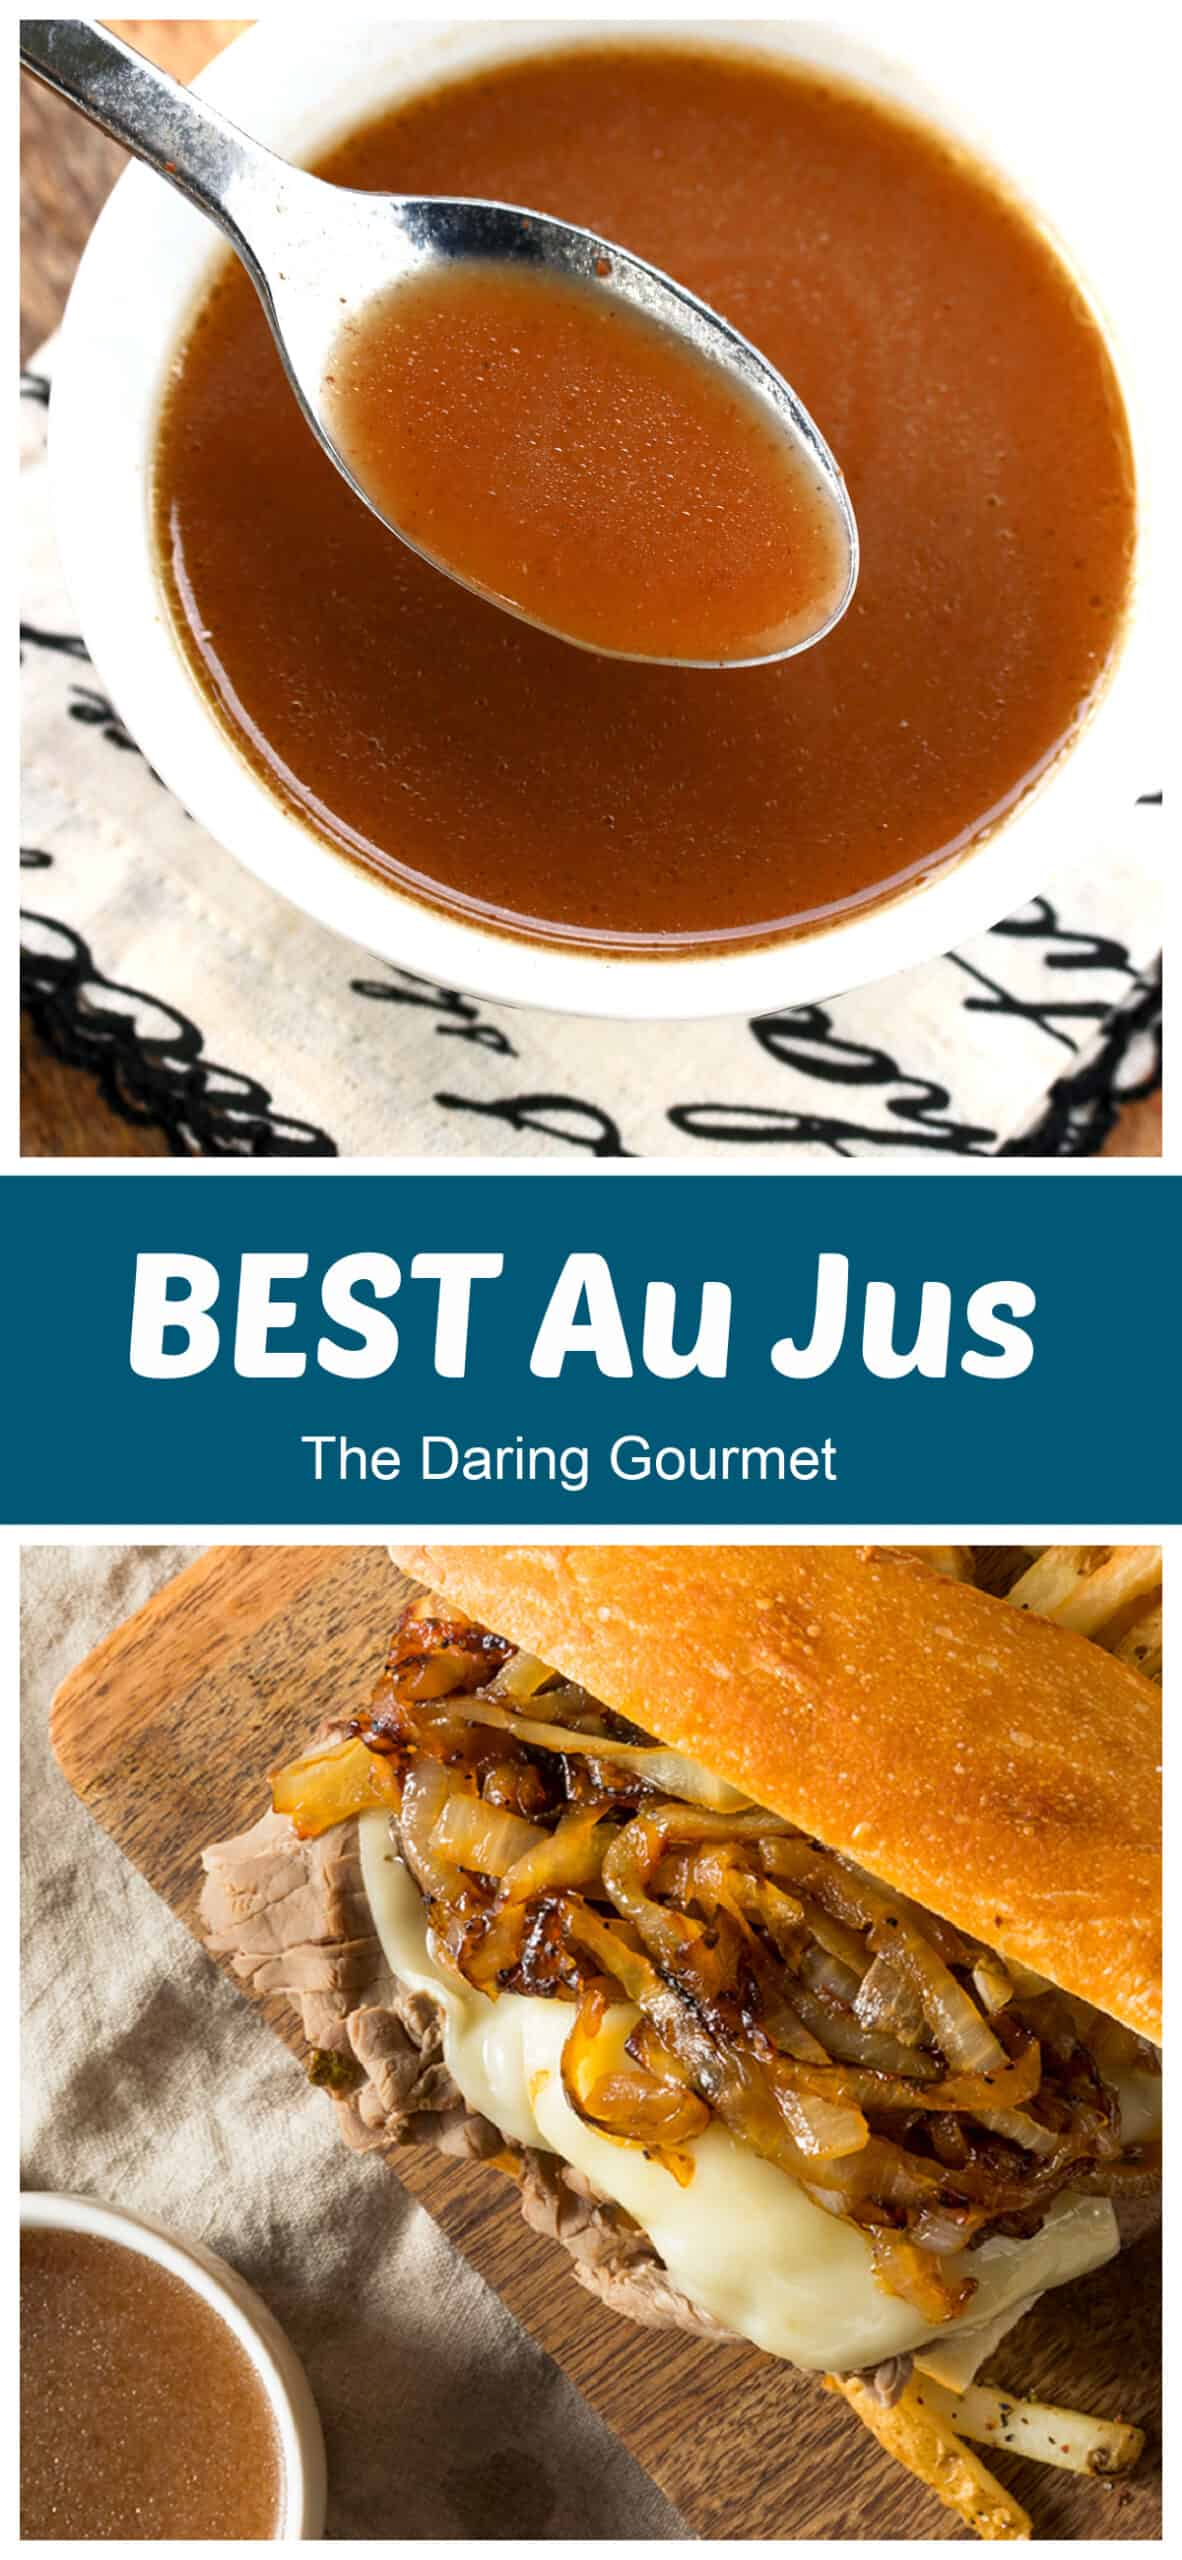 au jus recipe best homemade French dip gravy without drippings easy